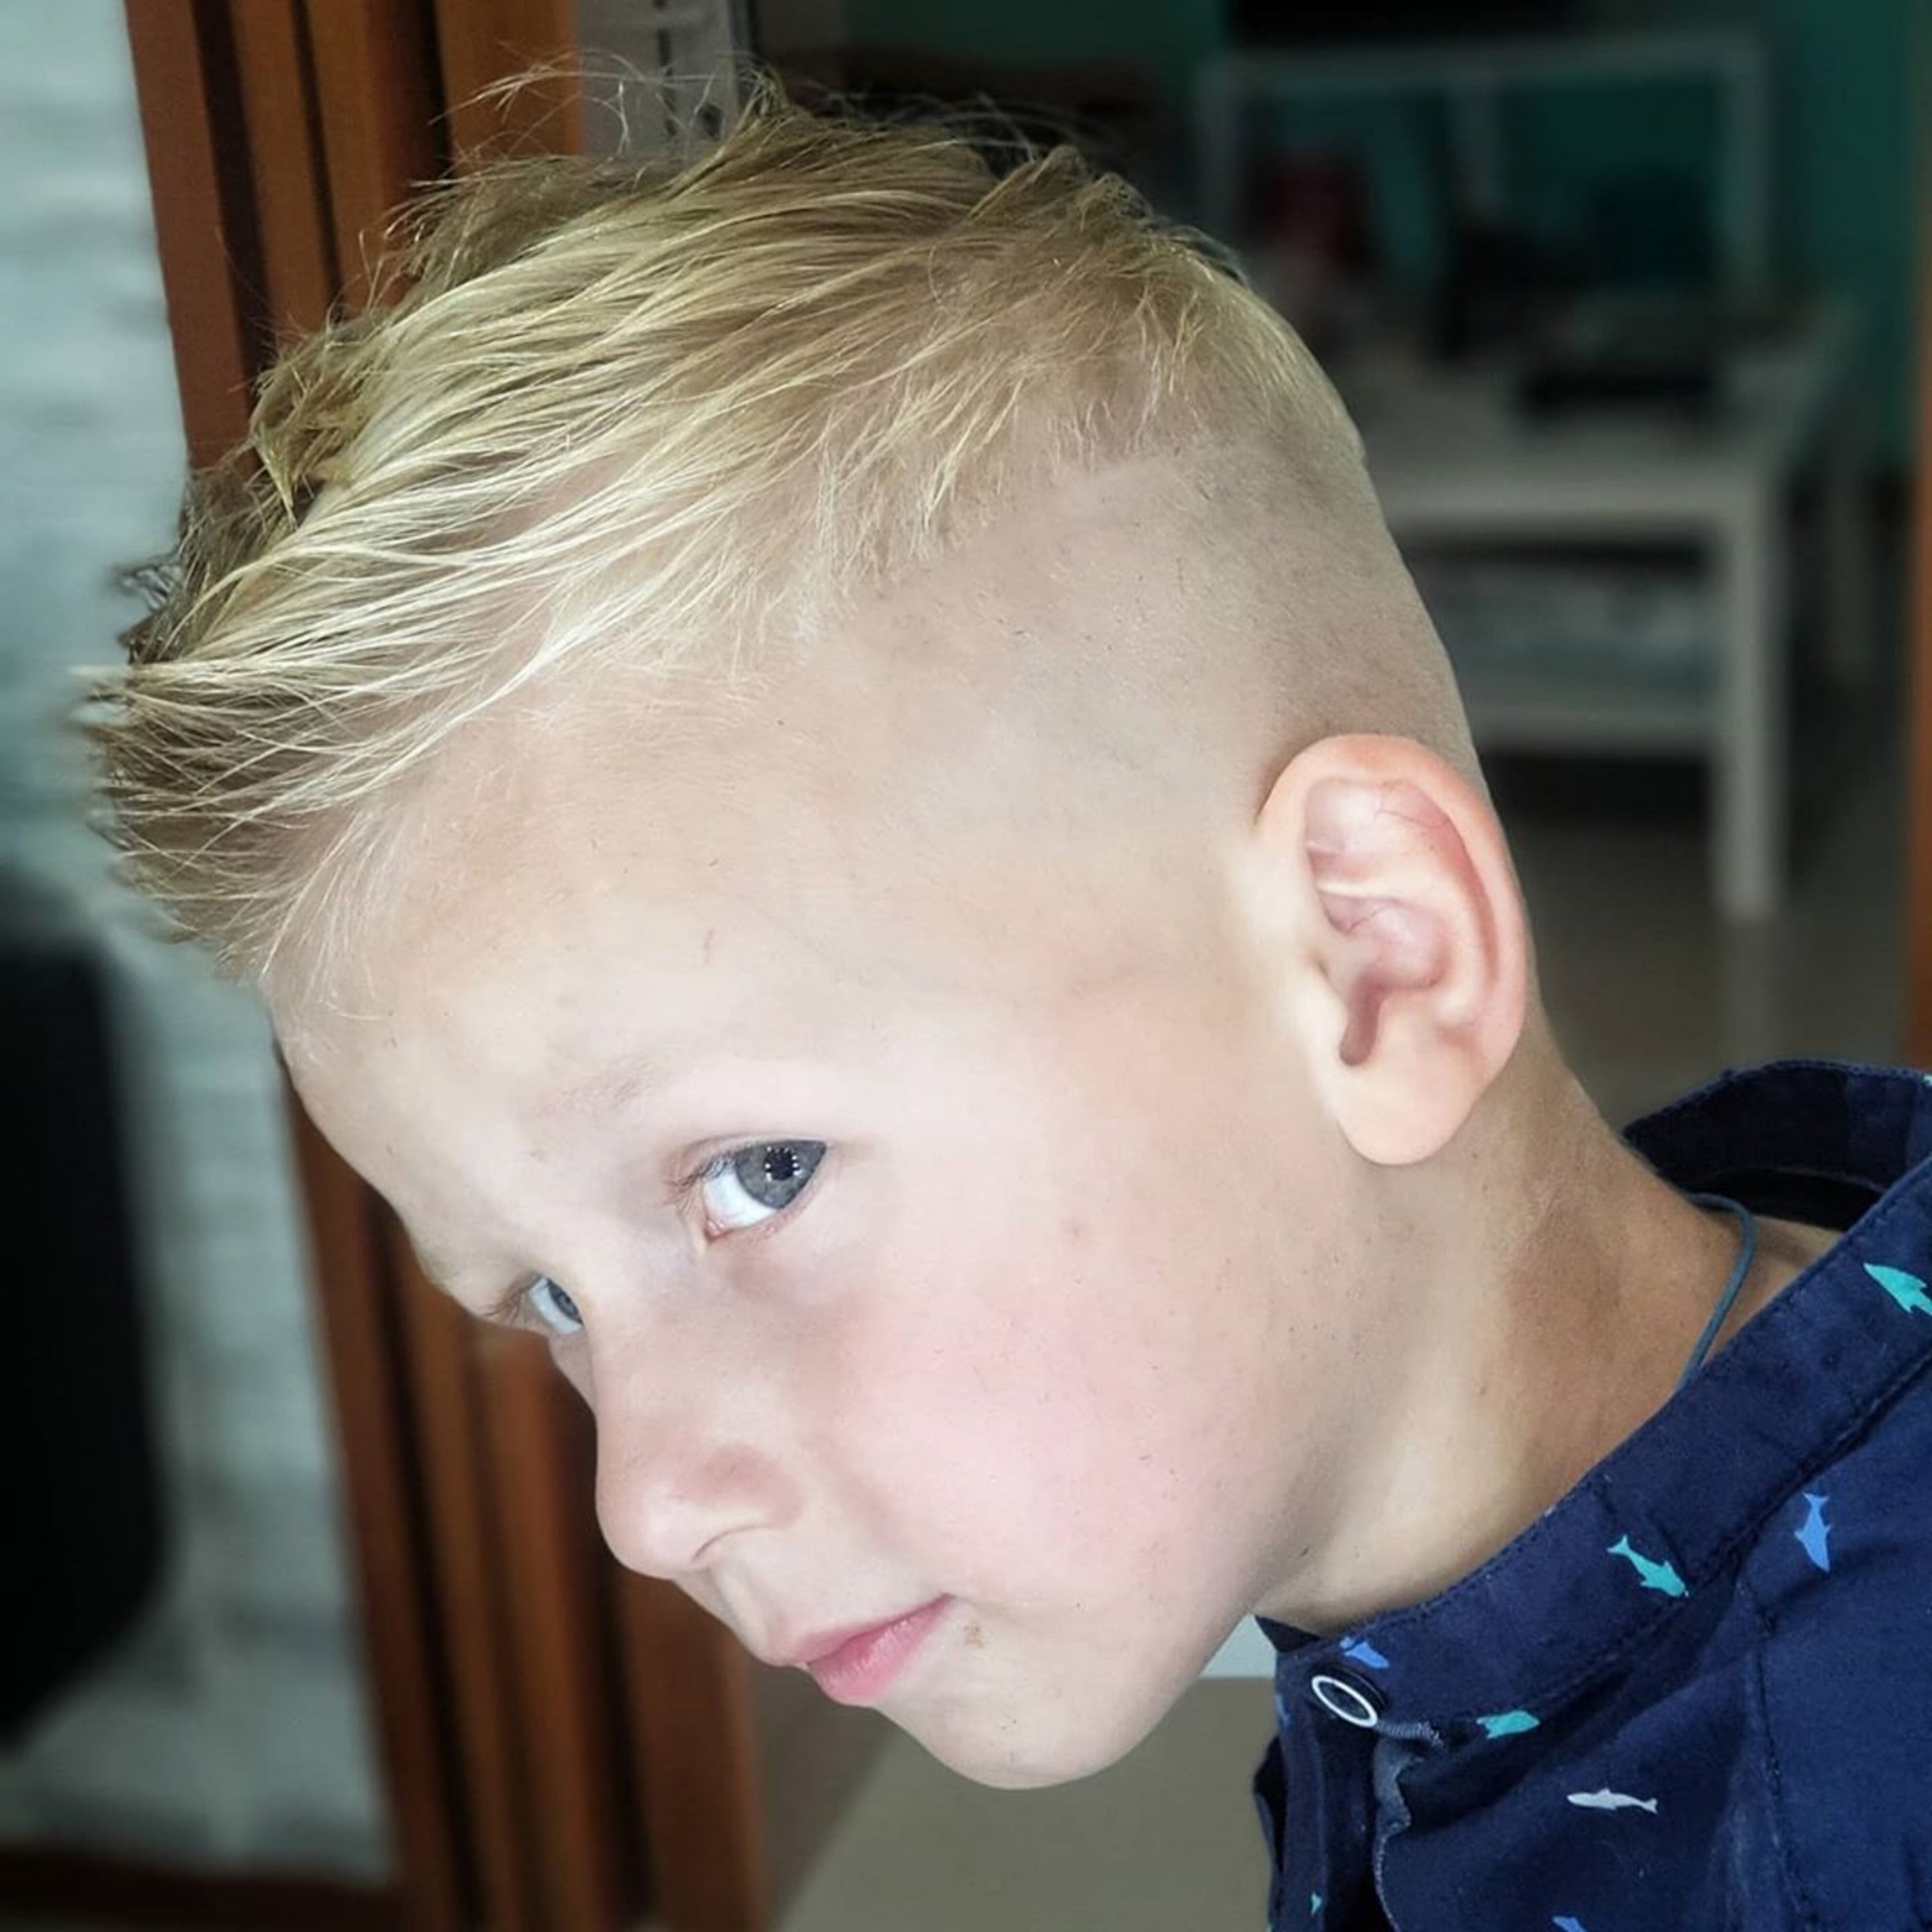 A bald-faded haircut for white boys.